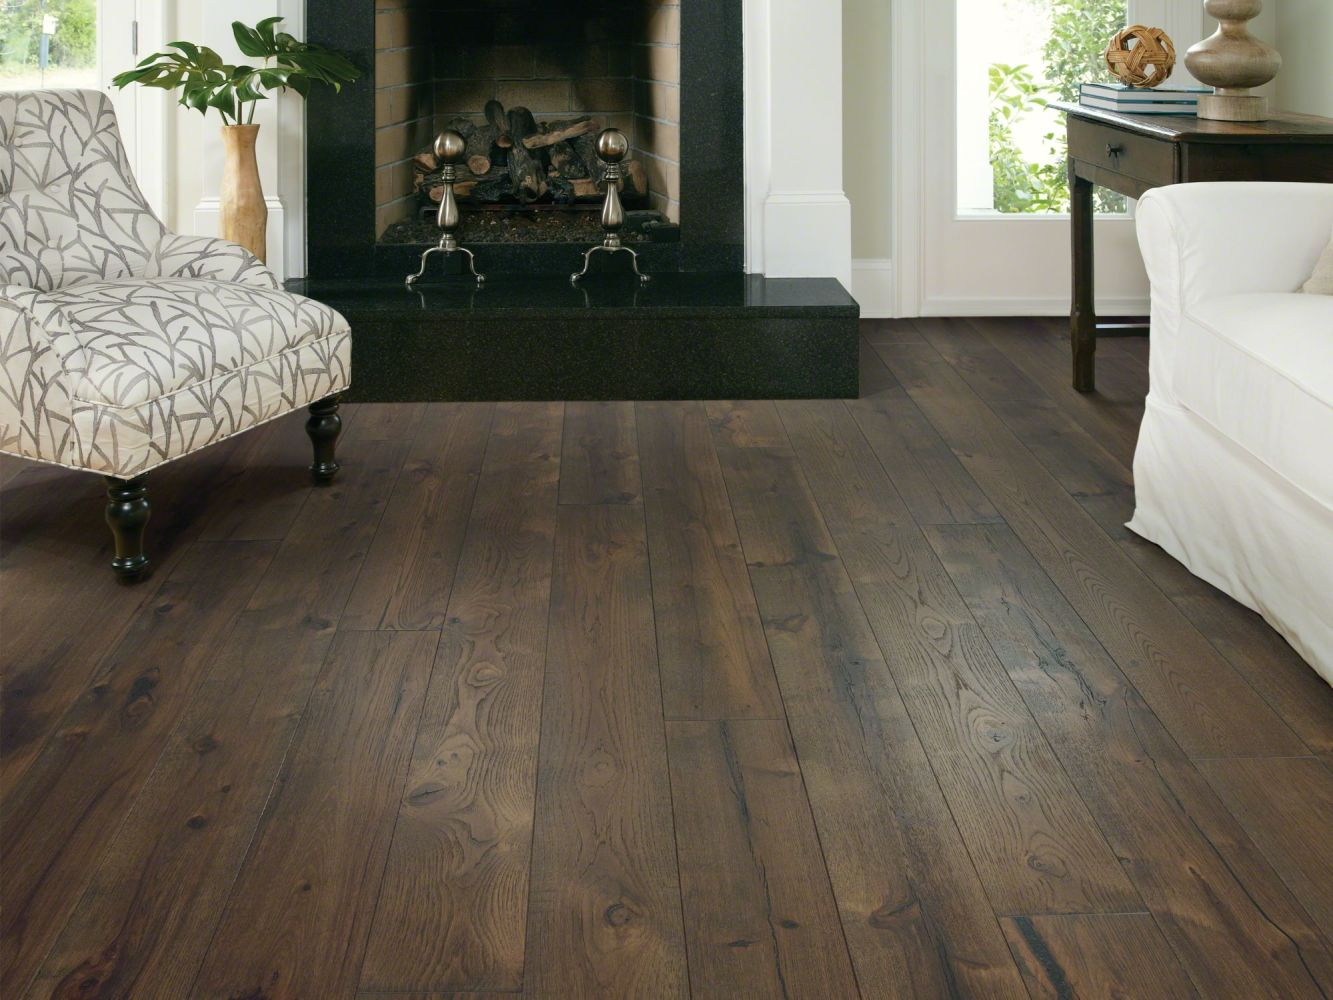 Shaw Floors Repel Hardwood Inspirations Hickory Majestic 09023_221SA